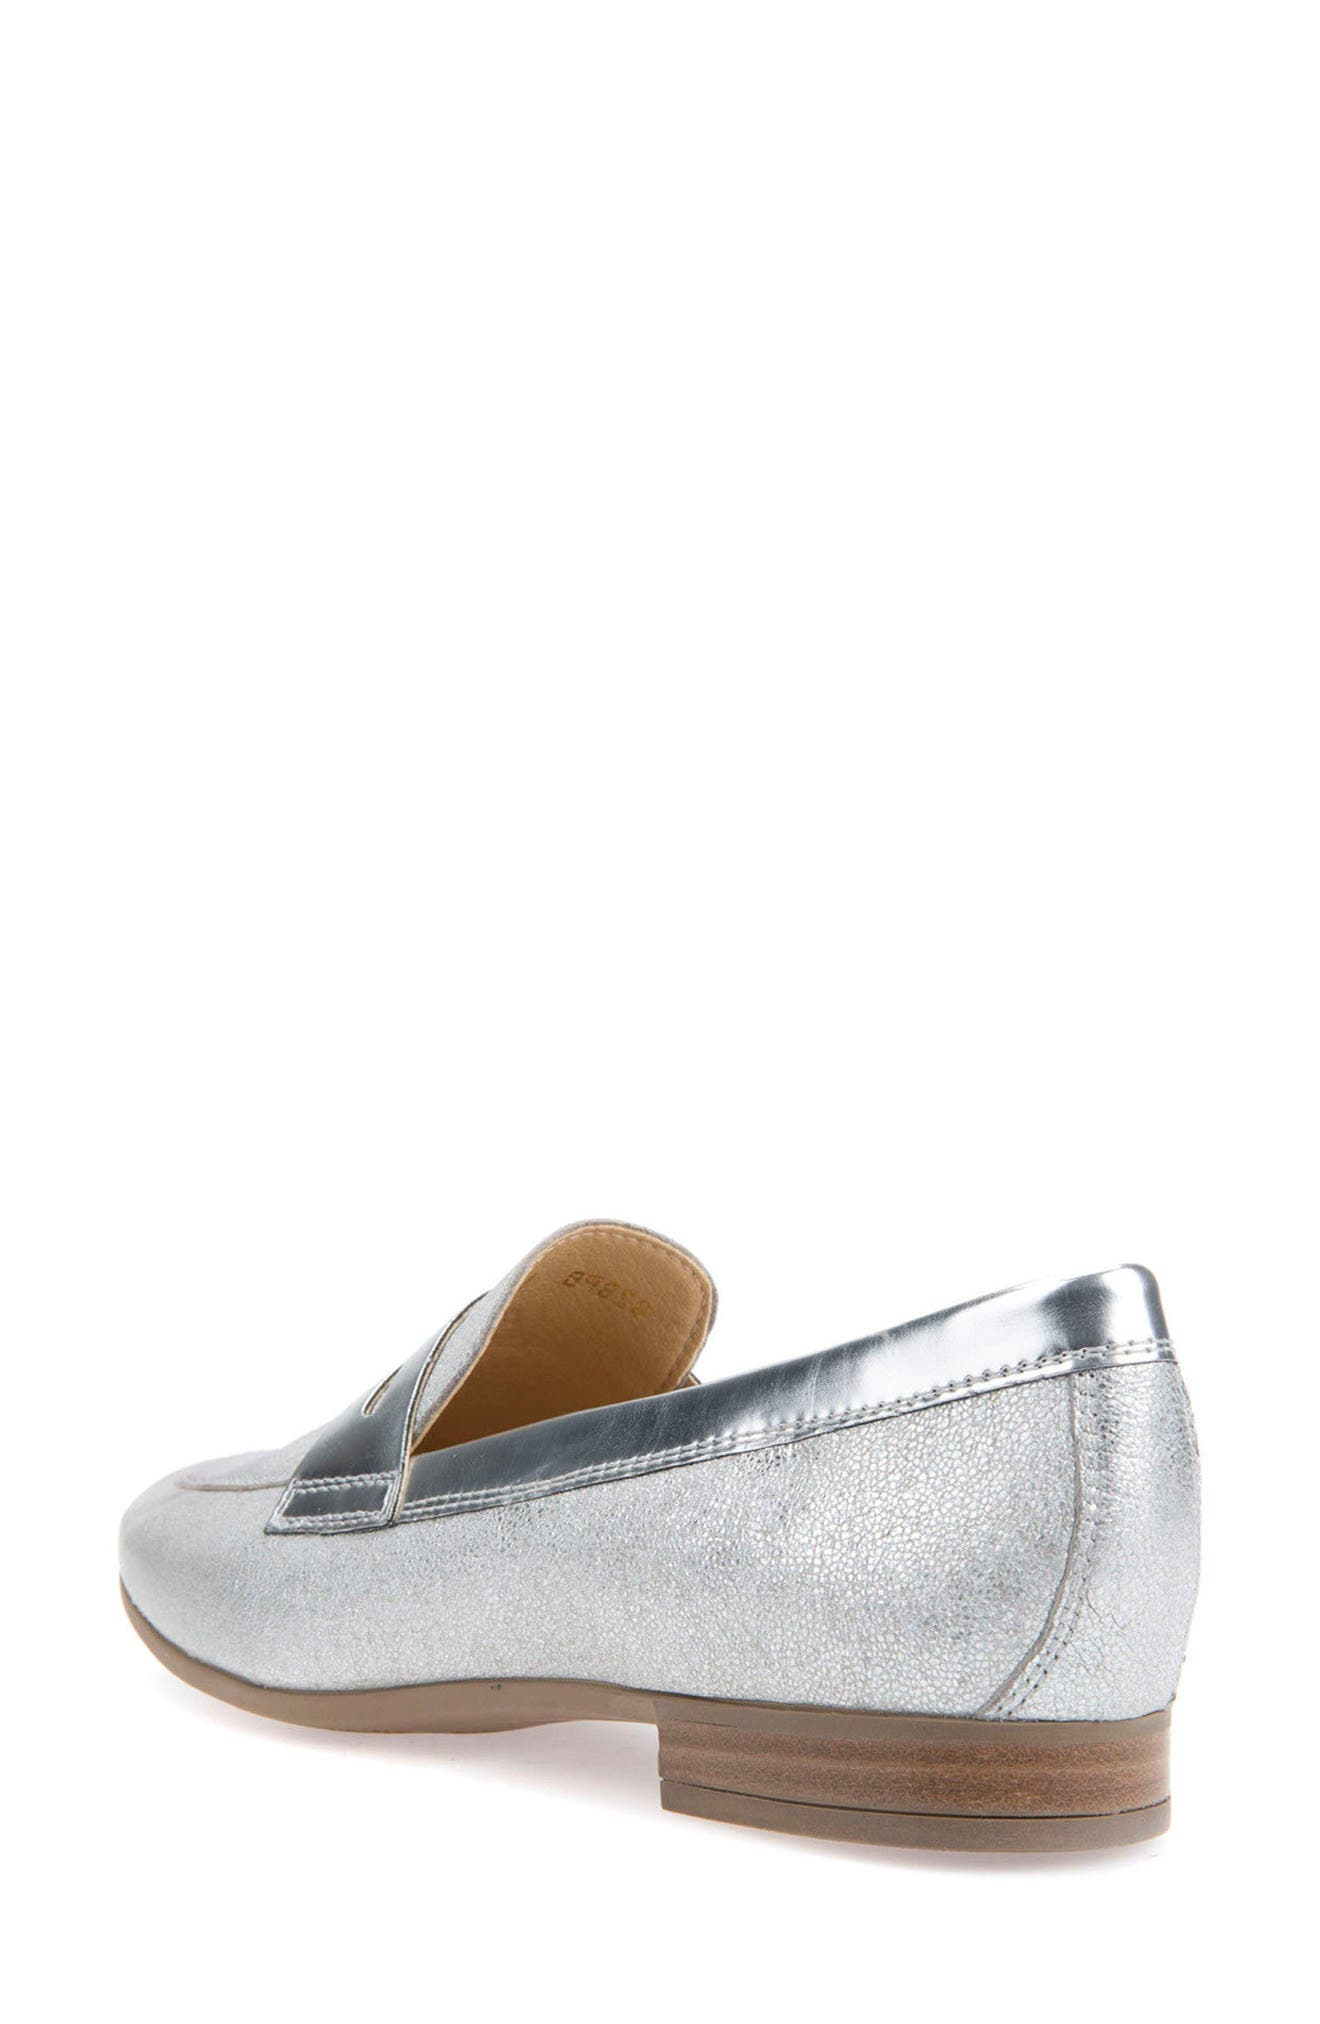 Marlyna Penny Loafer,                             Alternate thumbnail 2, color,                             040